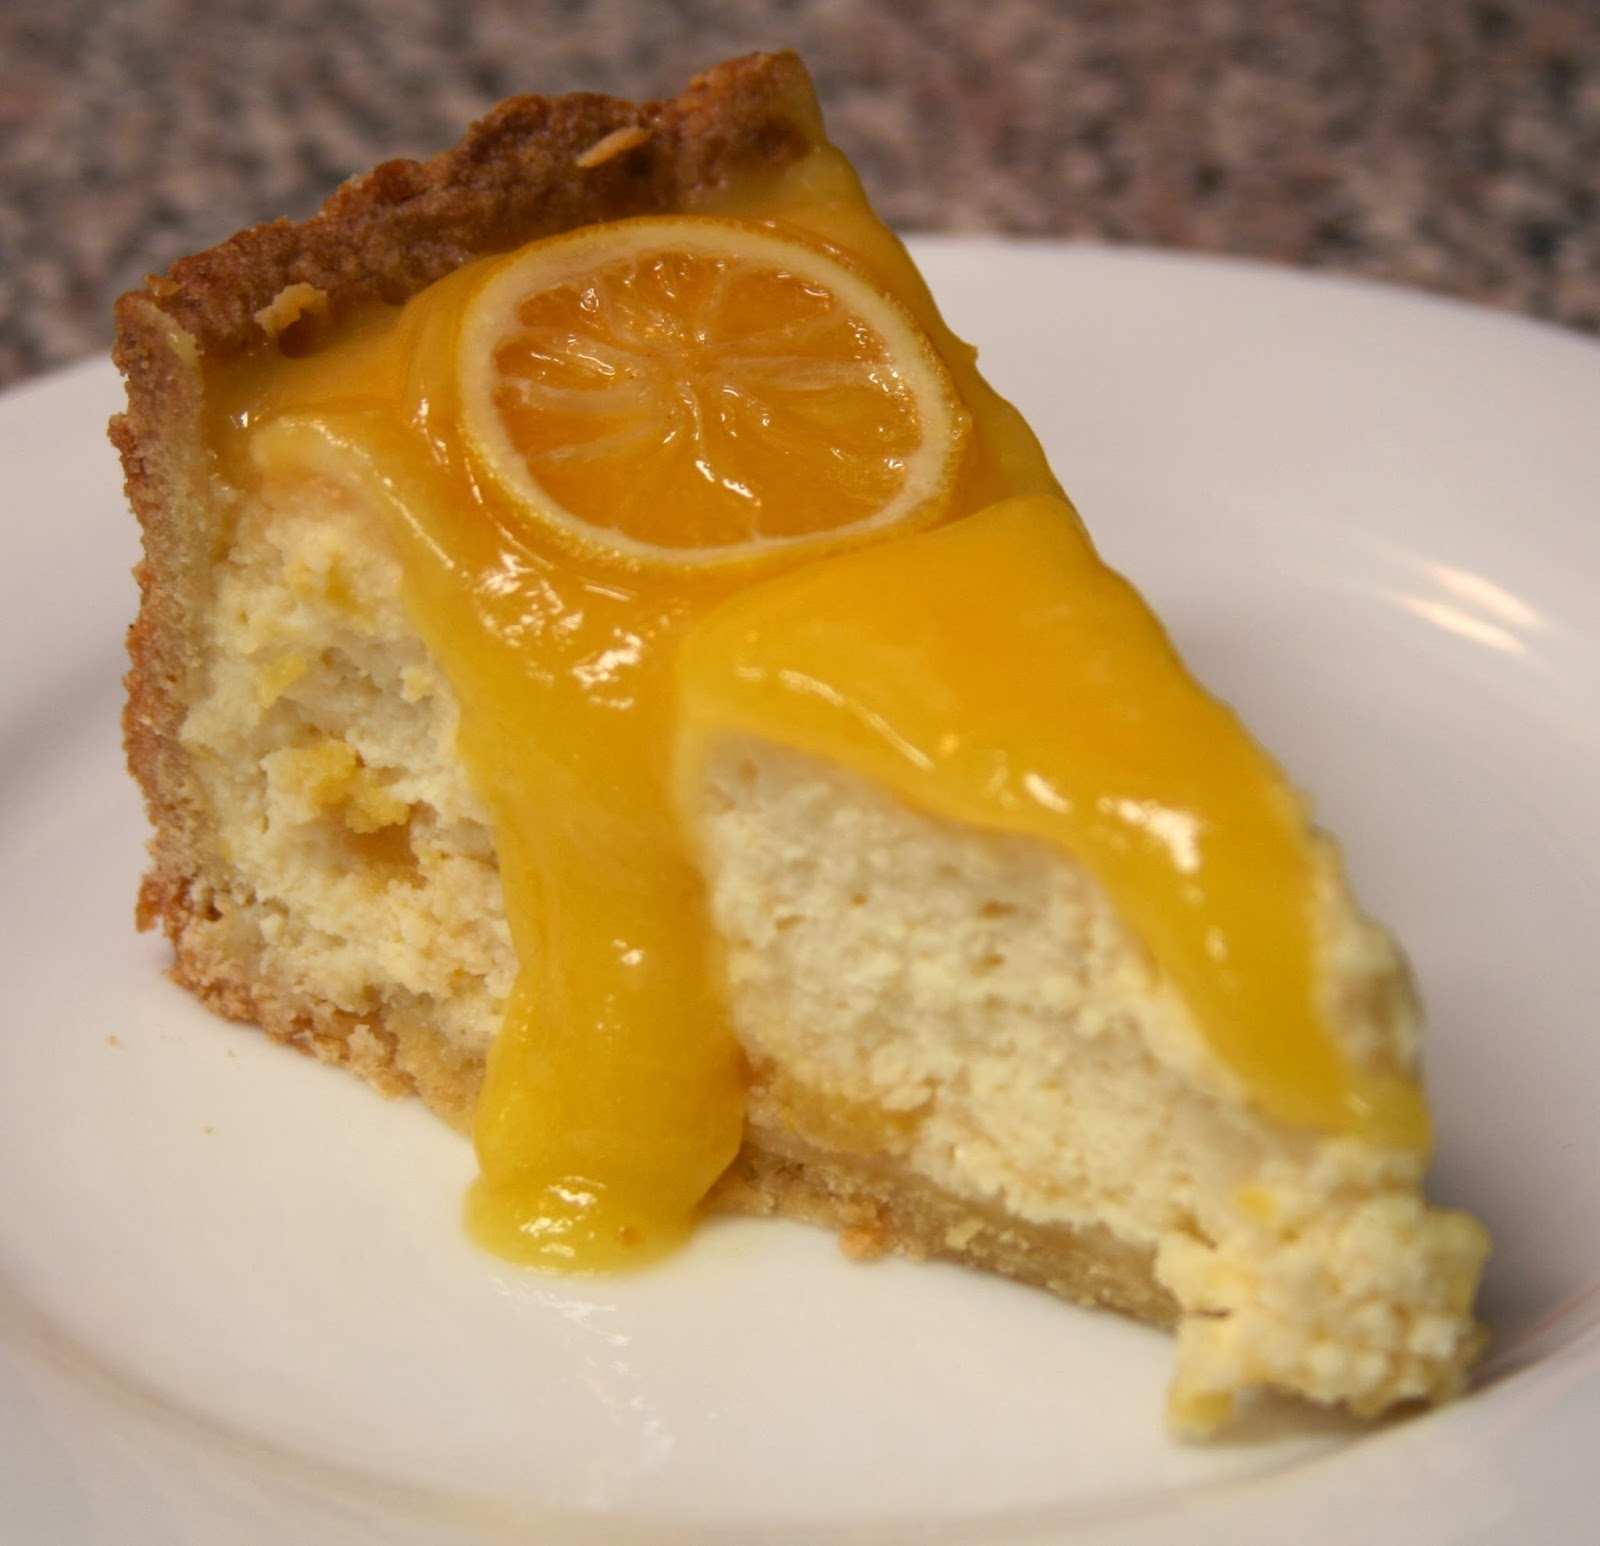 Culturally Confused: Southern Living: Lemon Bar Cheesecake